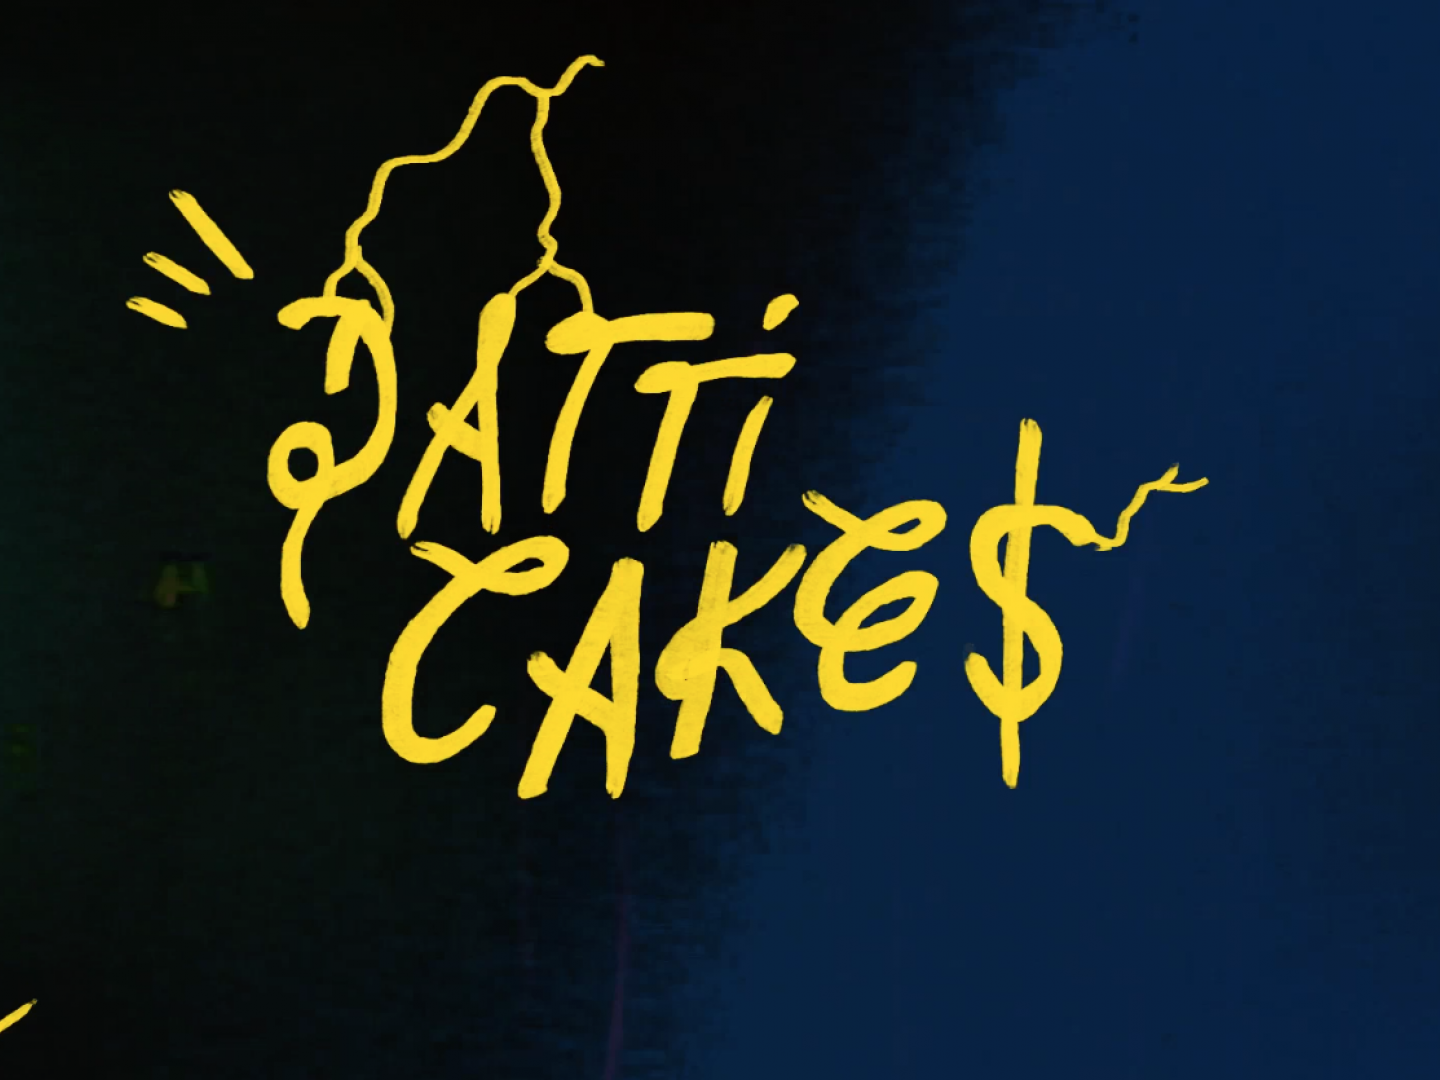 PATTI CAKE$ - Lyric Video Thumbnail